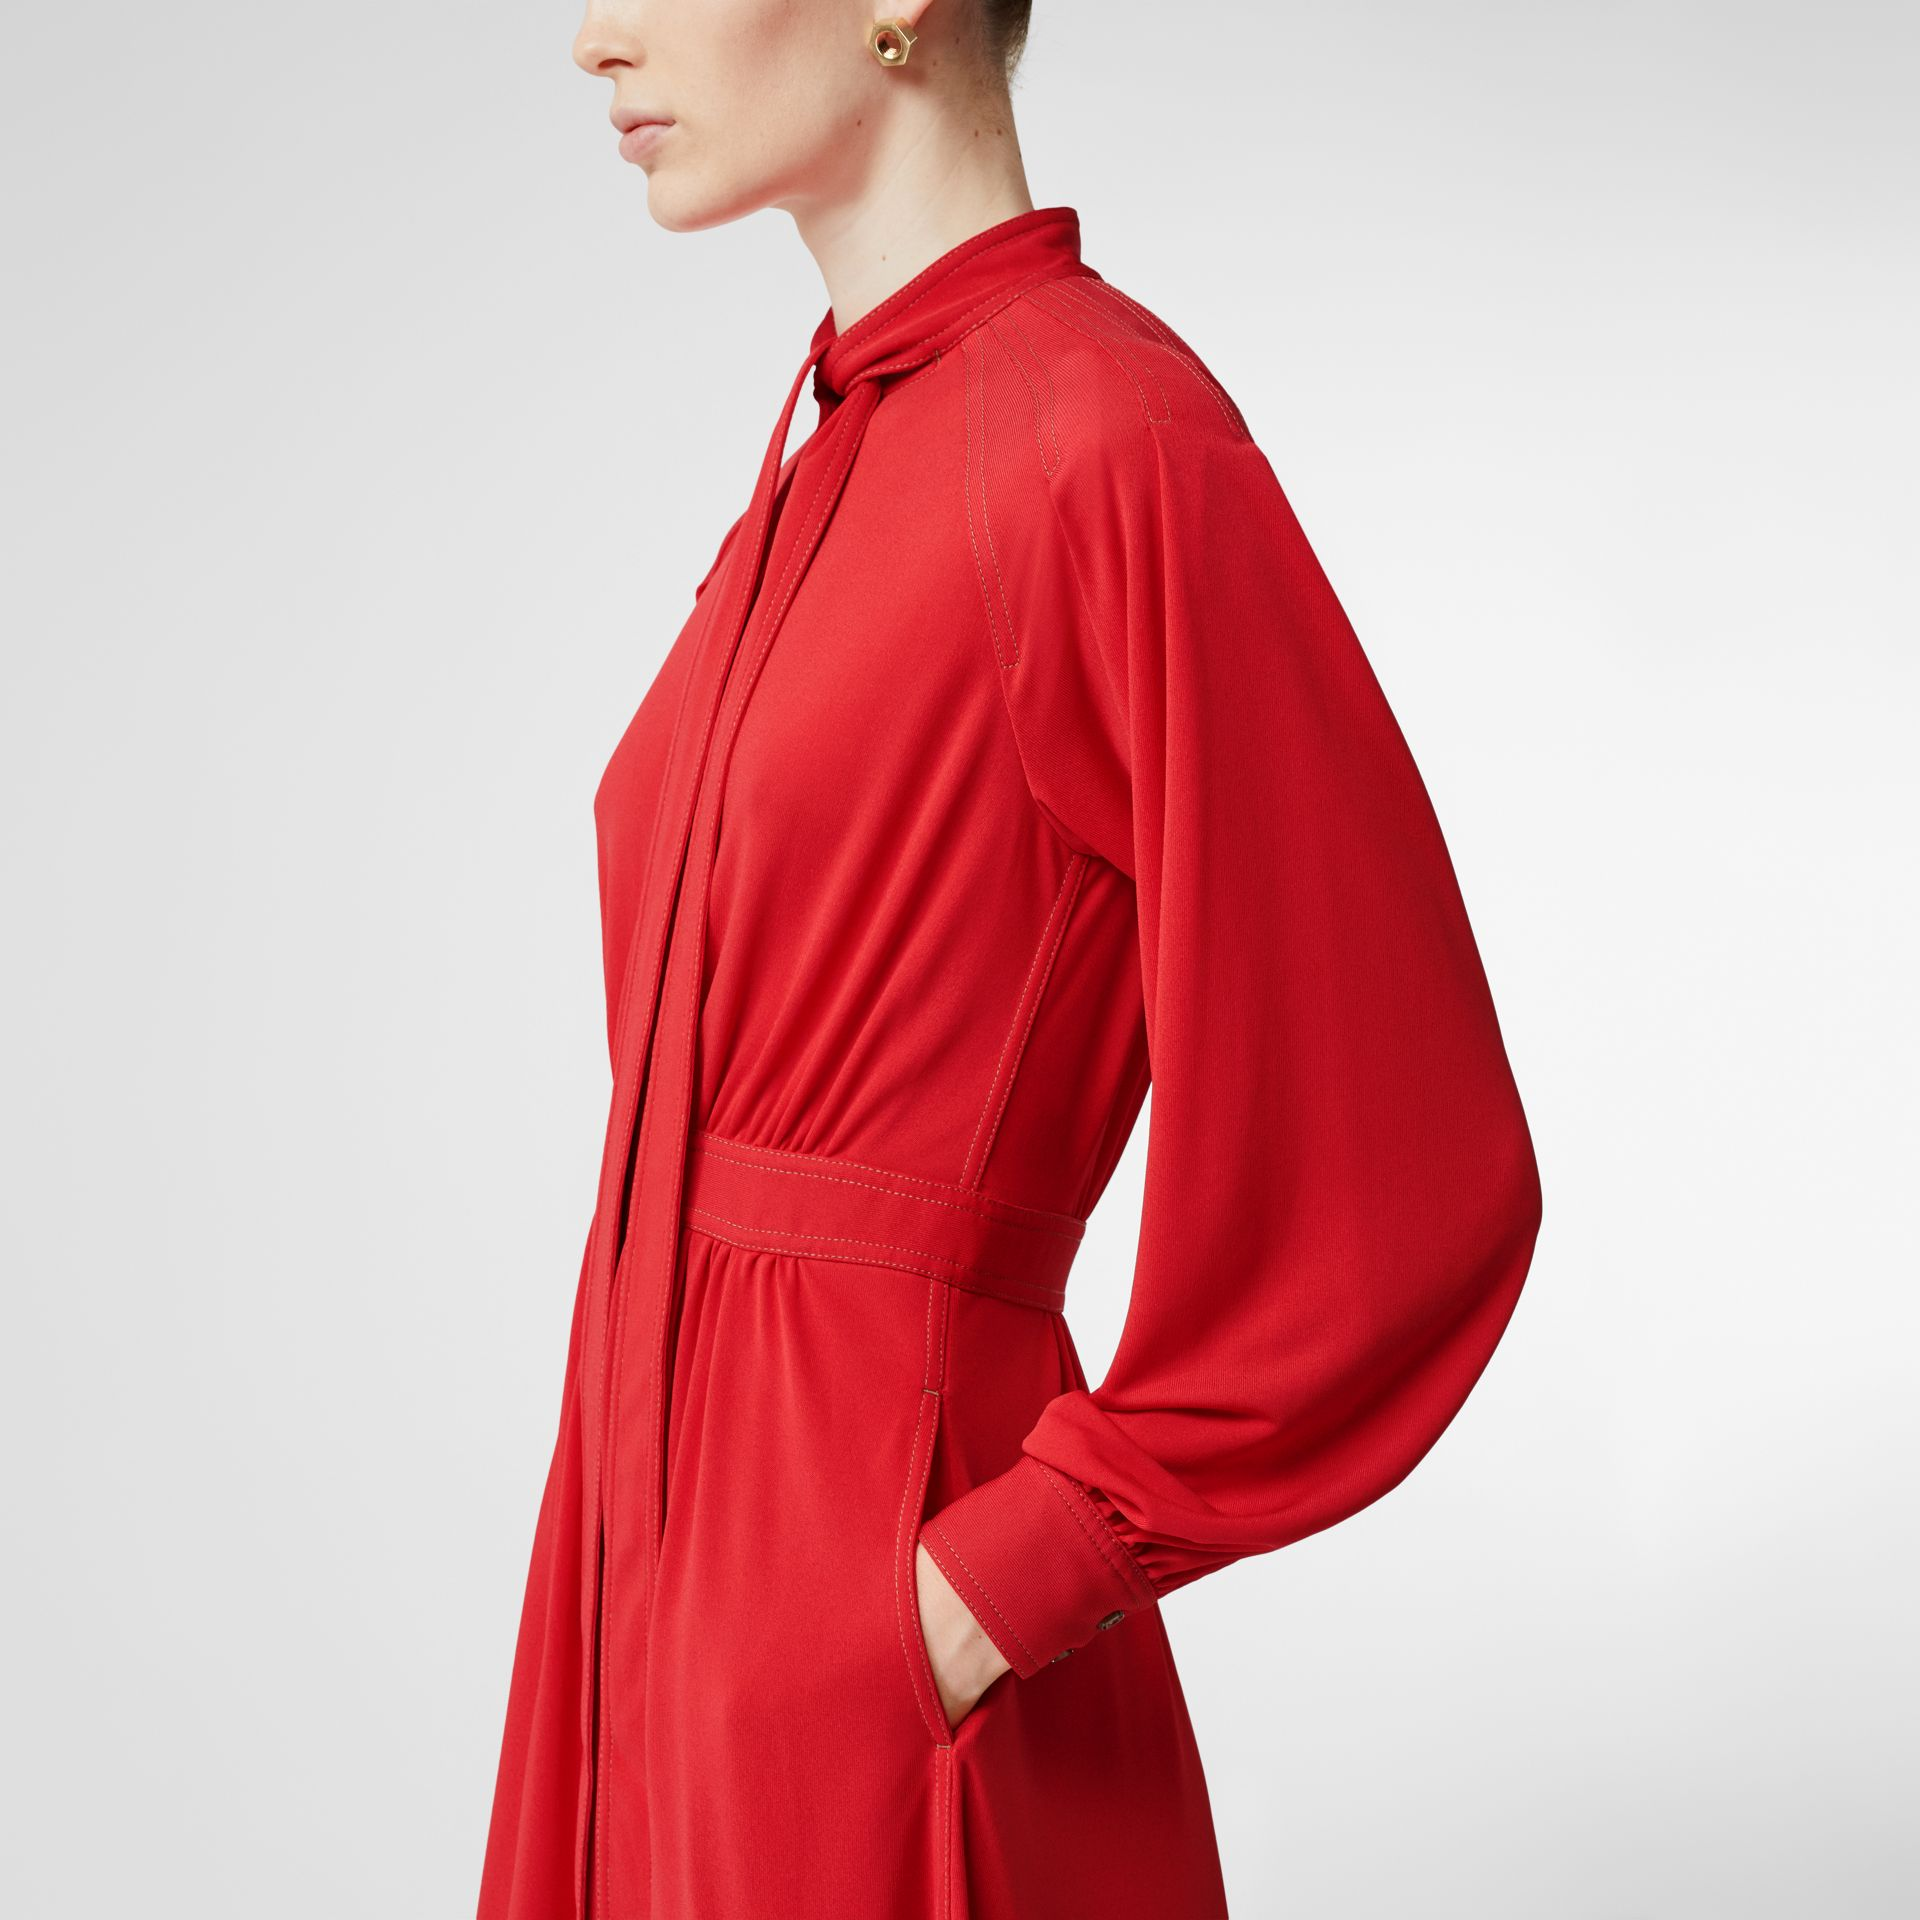 Topstitch Detail Jersey Tie-neck Dress in Bright Red - Women | Burberry United Kingdom - gallery image 1